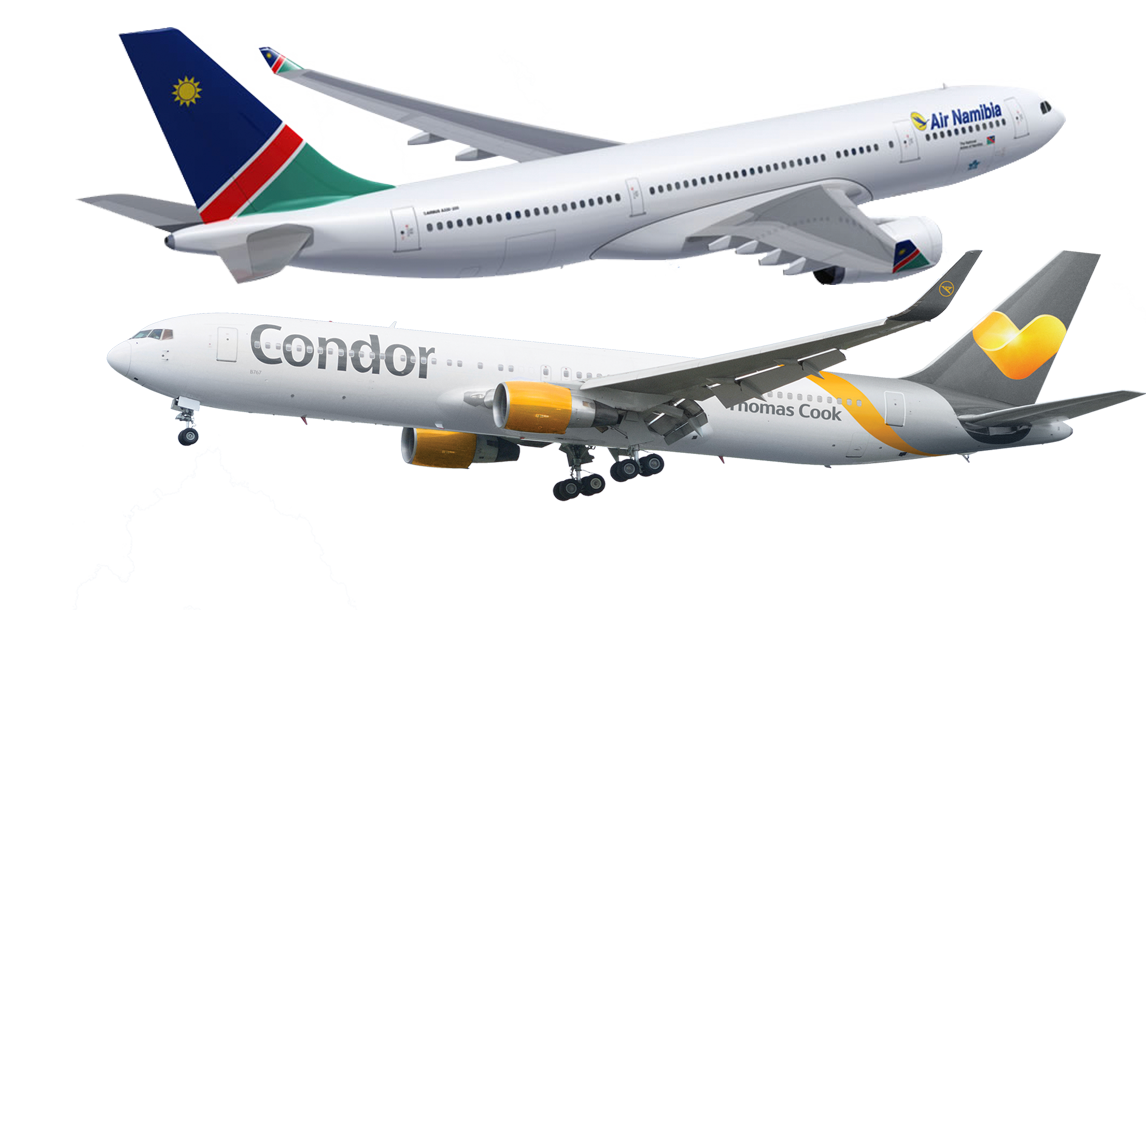 Fly to namibia carrying. Air png image picture free download